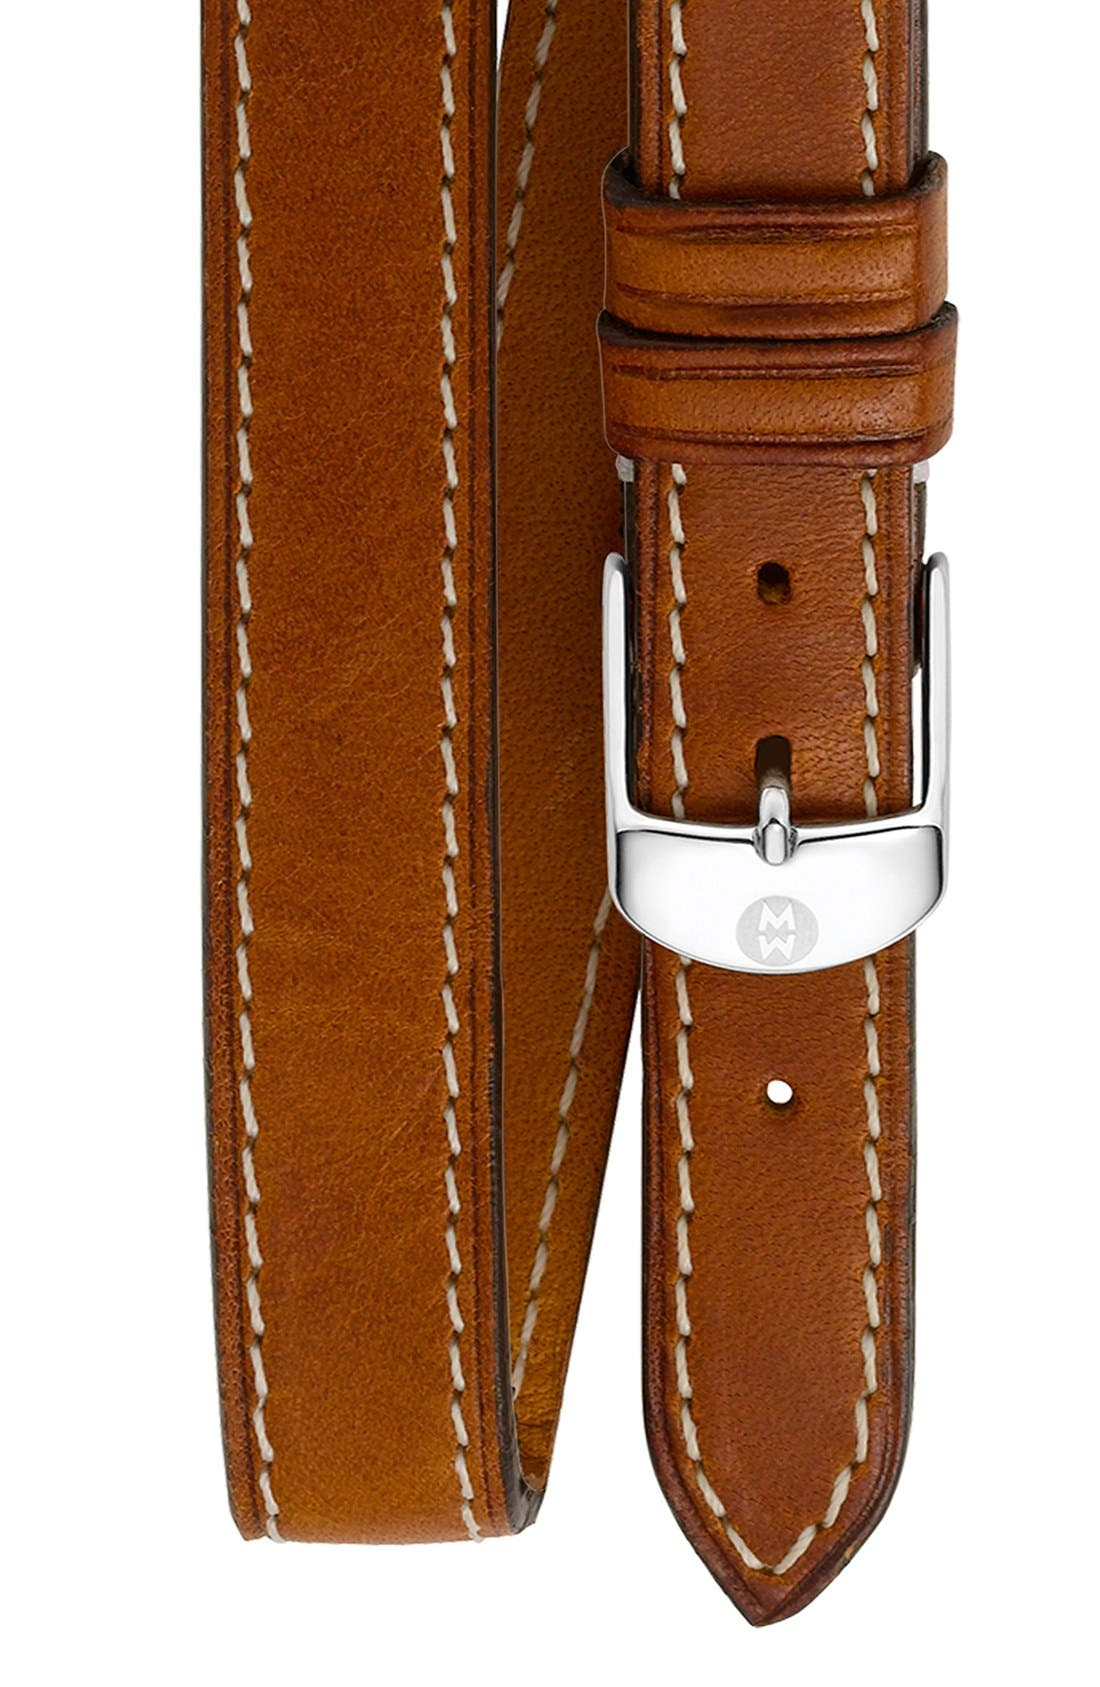 16mm Leather Double Wrap Watch Strap,                             Main thumbnail 1, color,                             Light Brown